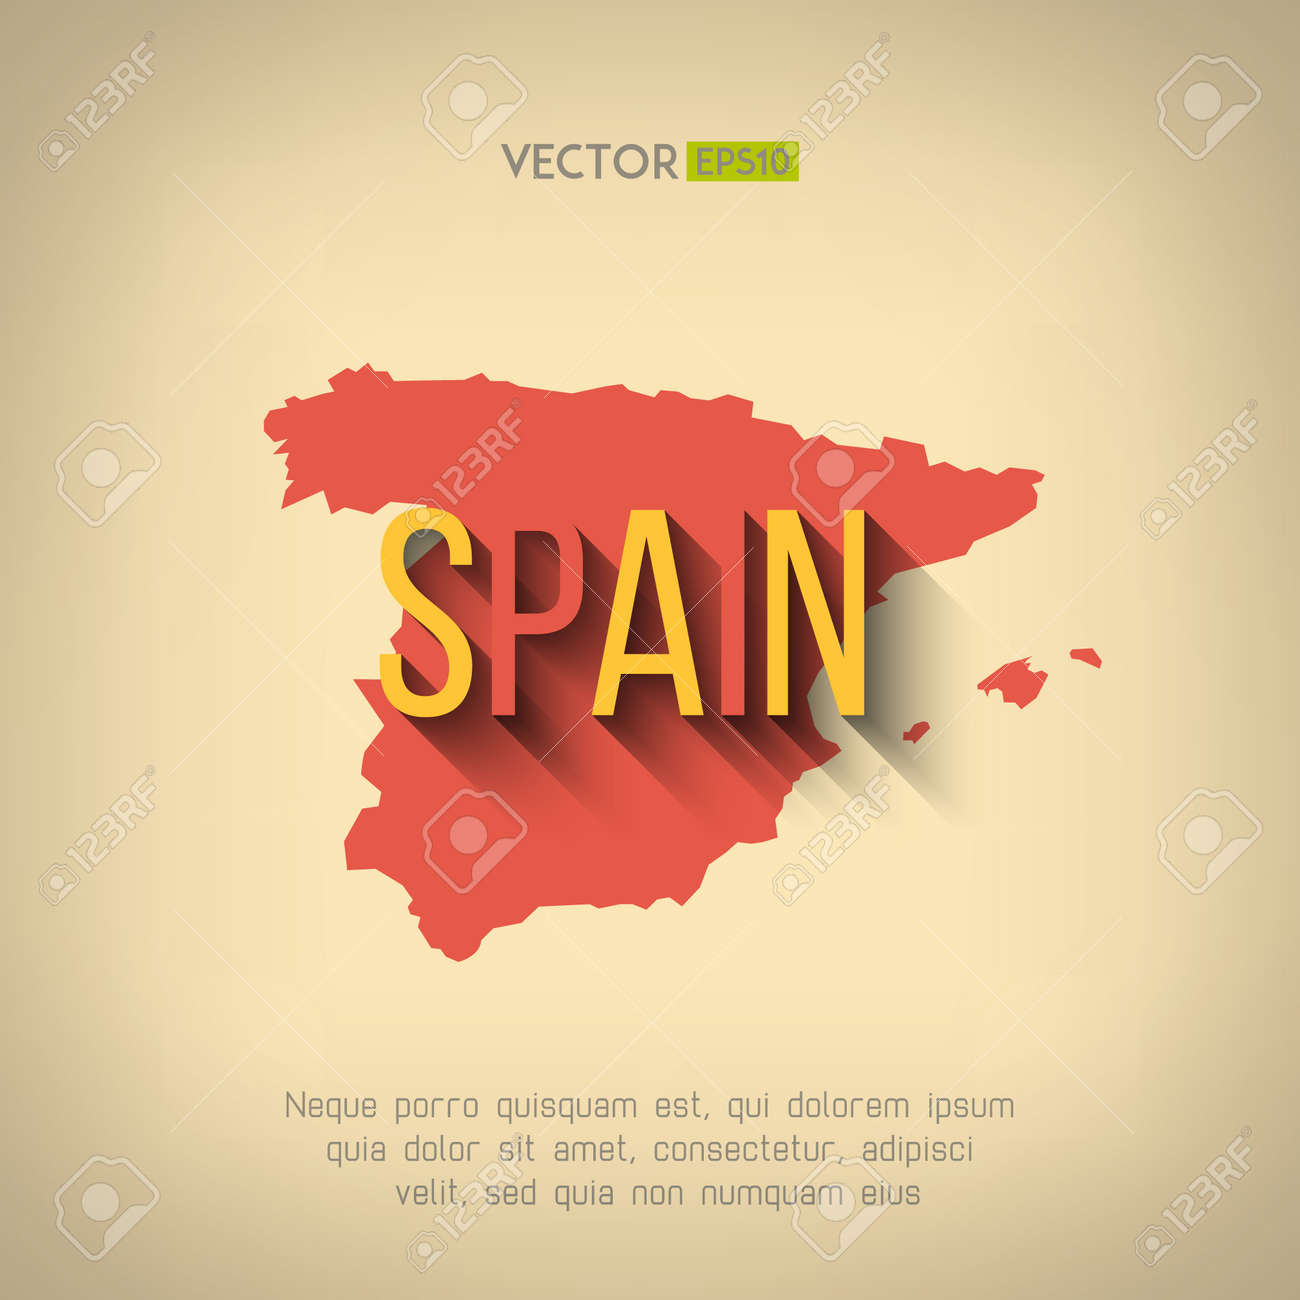 Country Of Spain Map.Vector Spain Map In Flat Design Spanish Border And Country Name